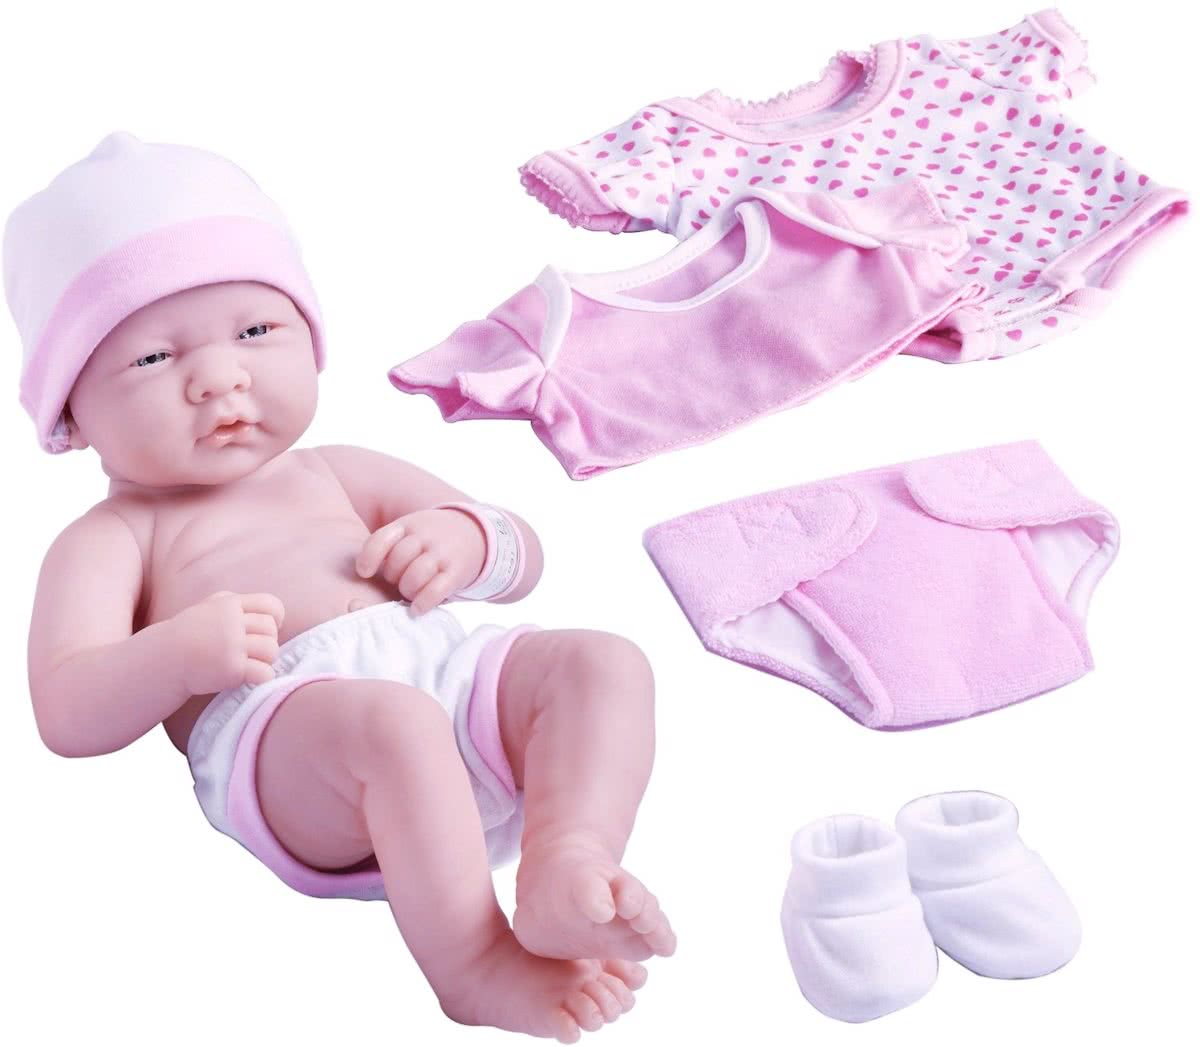 La Newborn Nursery doll